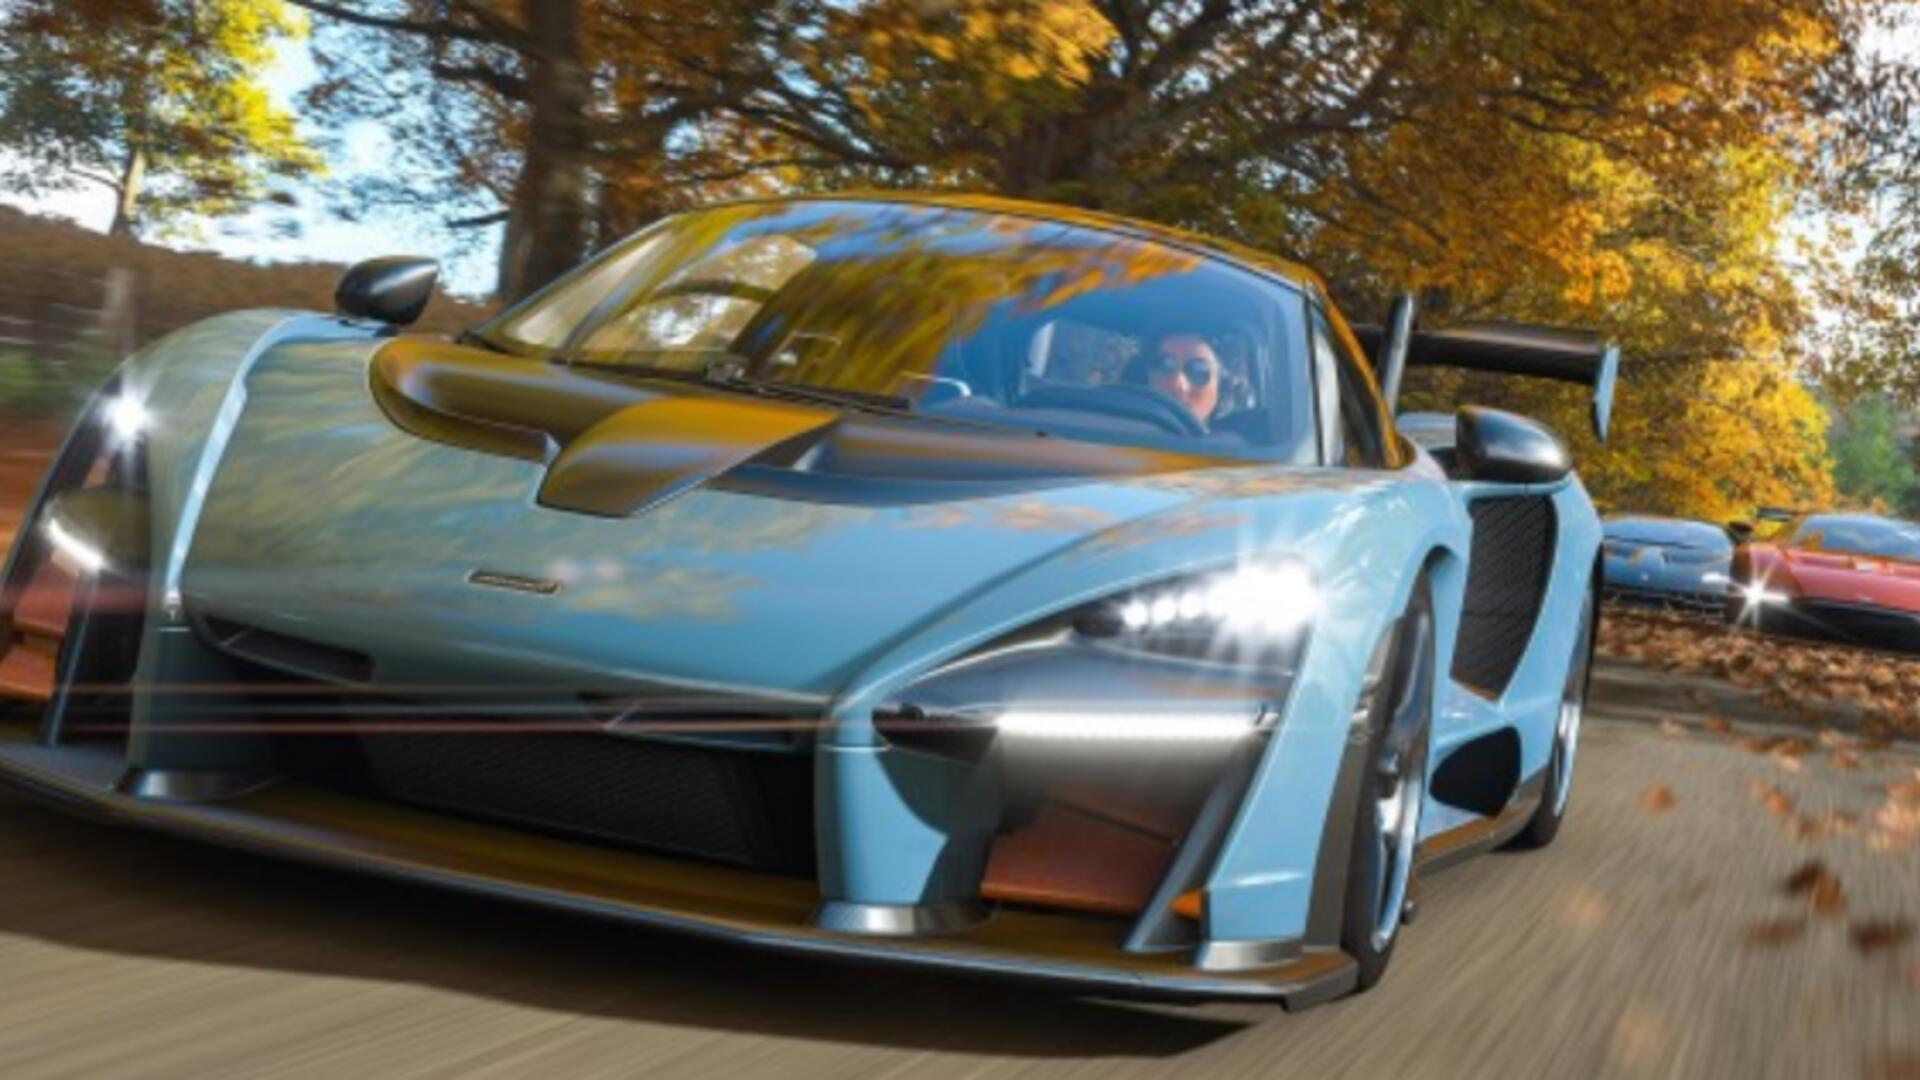 Watch Us Play the Gorgeous Forza Horizon 4 on Xbox One X in 4K